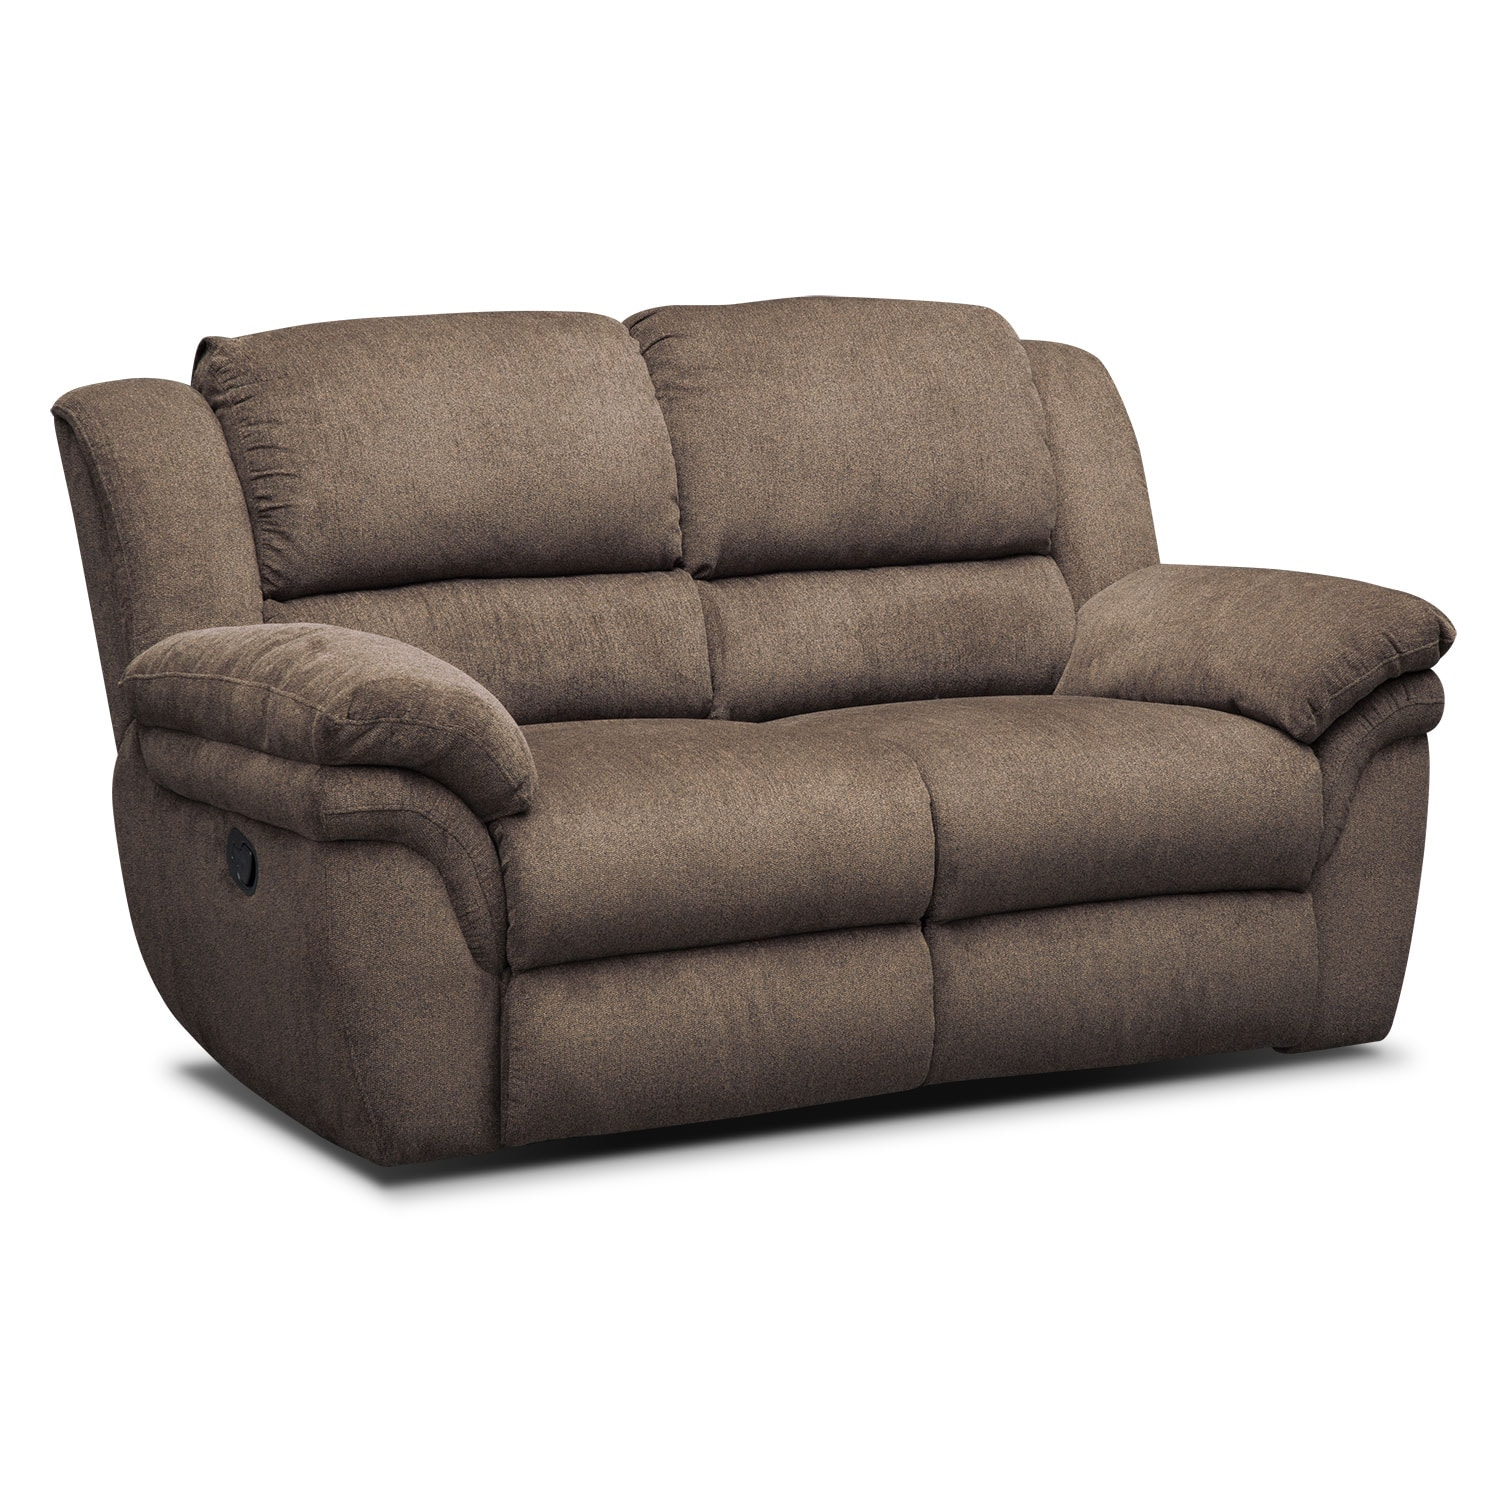 Aldo manual dual reclining sofa loveseat and recliner set mocha american signature furniture Loveseats that recline